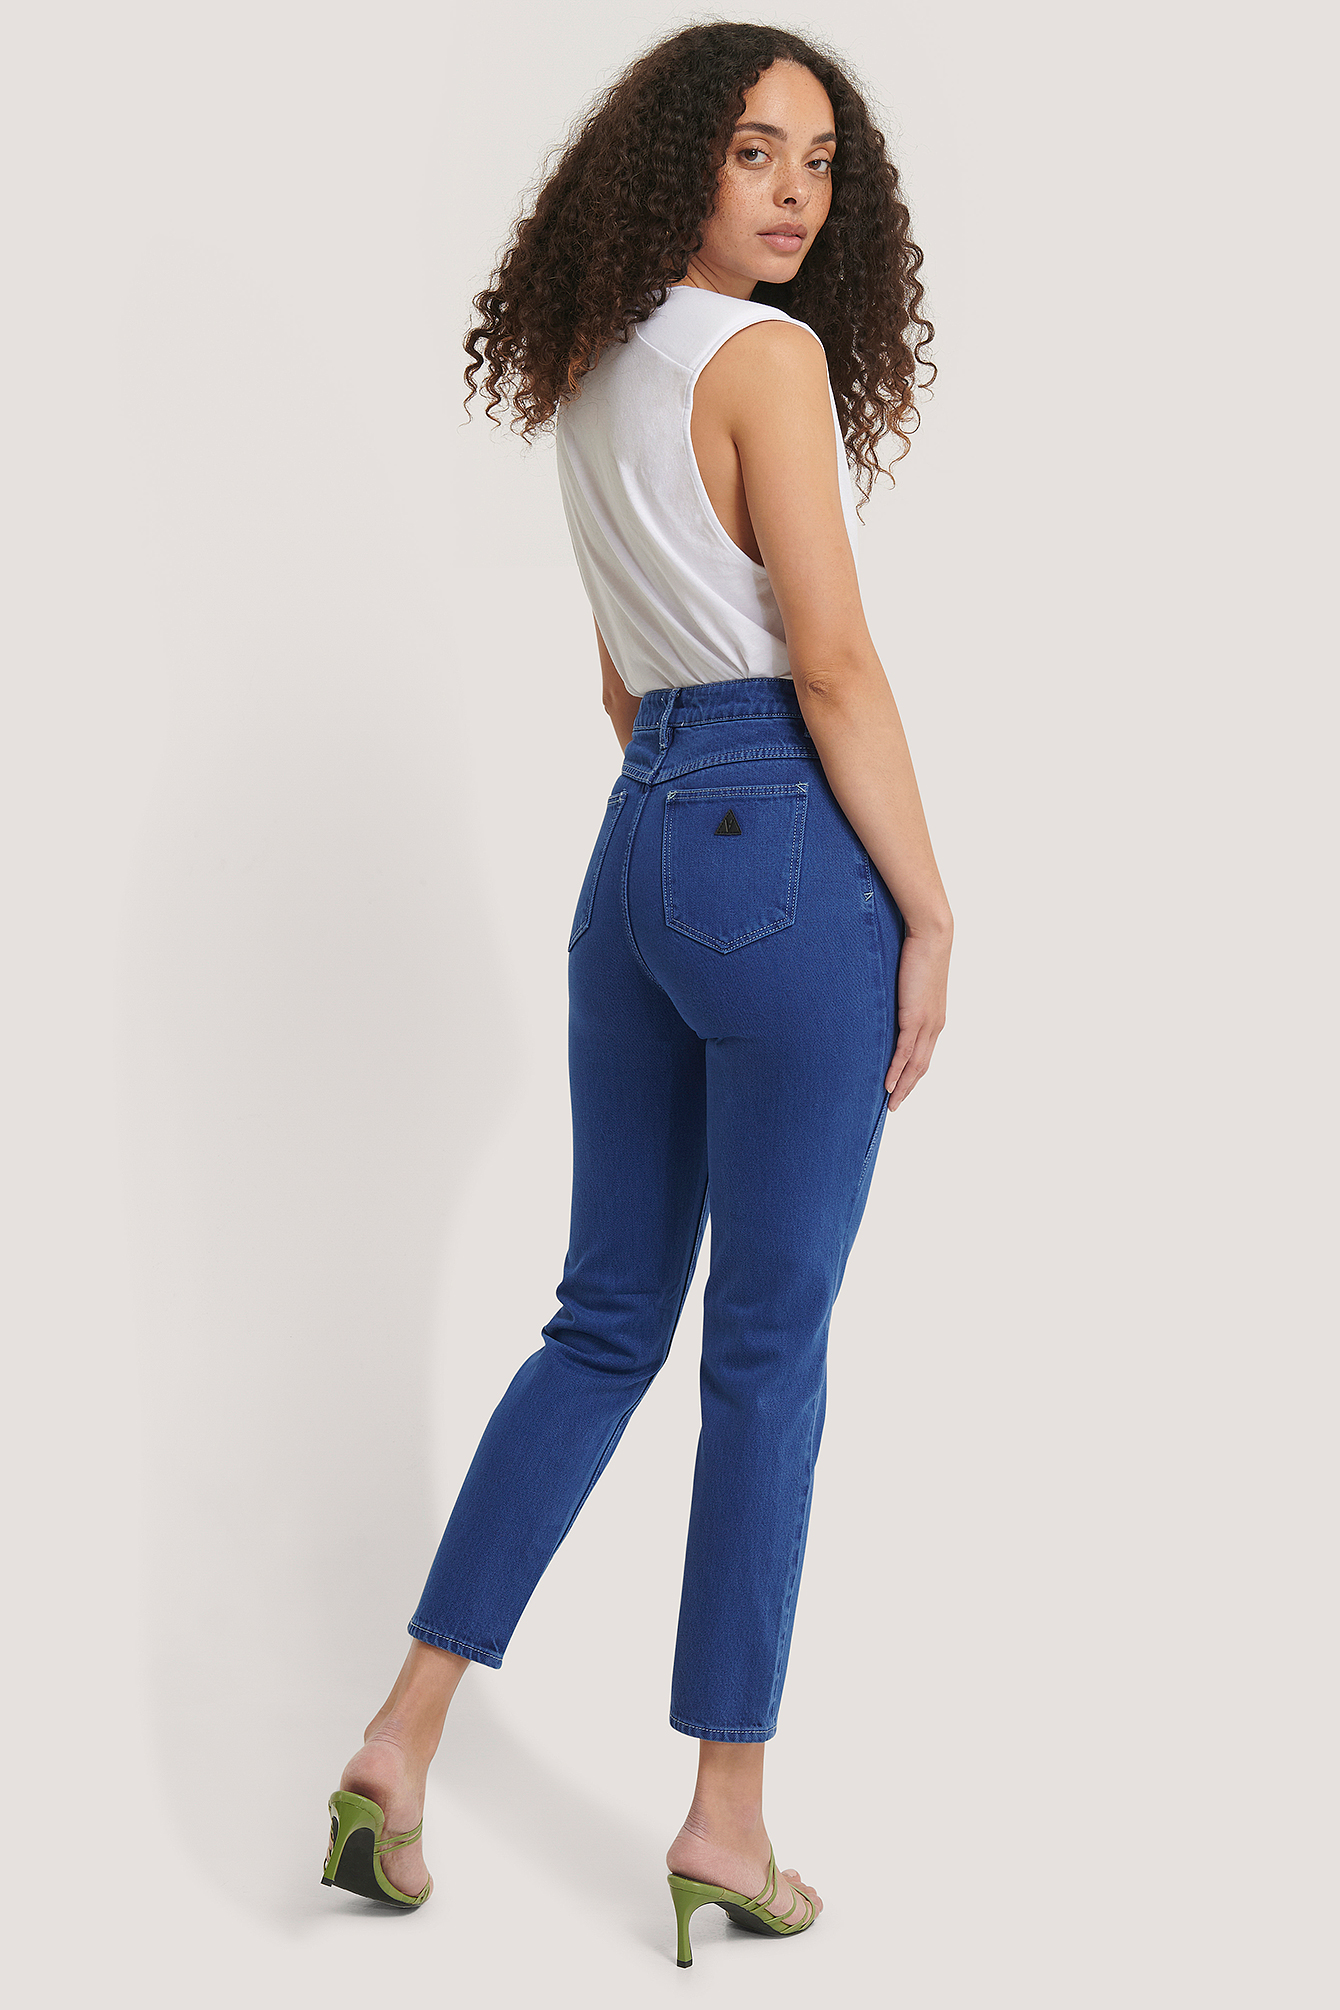 Club Edit A 94 High Slim Jeans